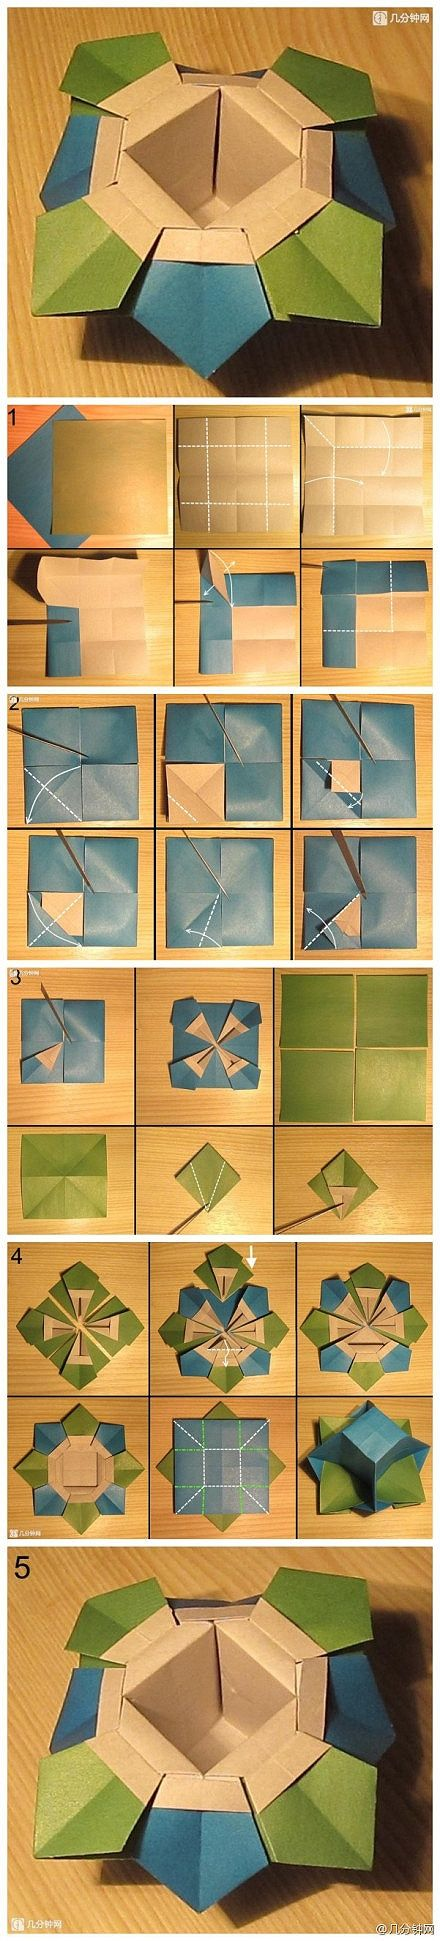 Origami dish.  Photo instructions.